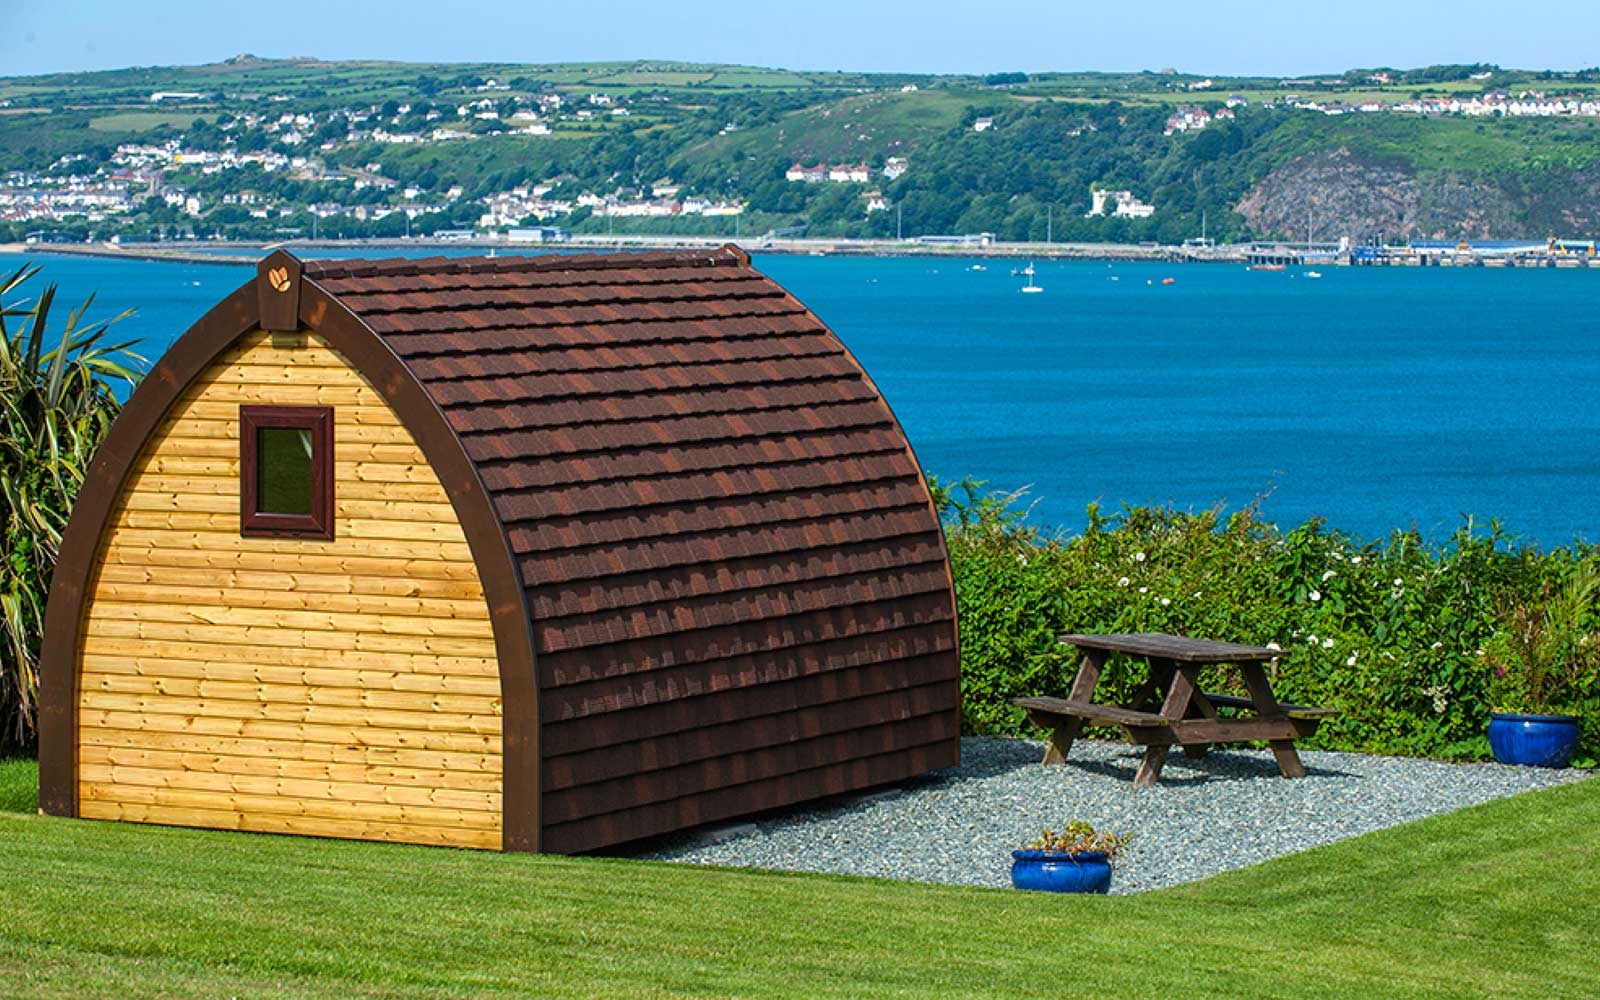 From Gypsy Wagons to Clifftop Pods, These Are The UK's Best Glamping Options